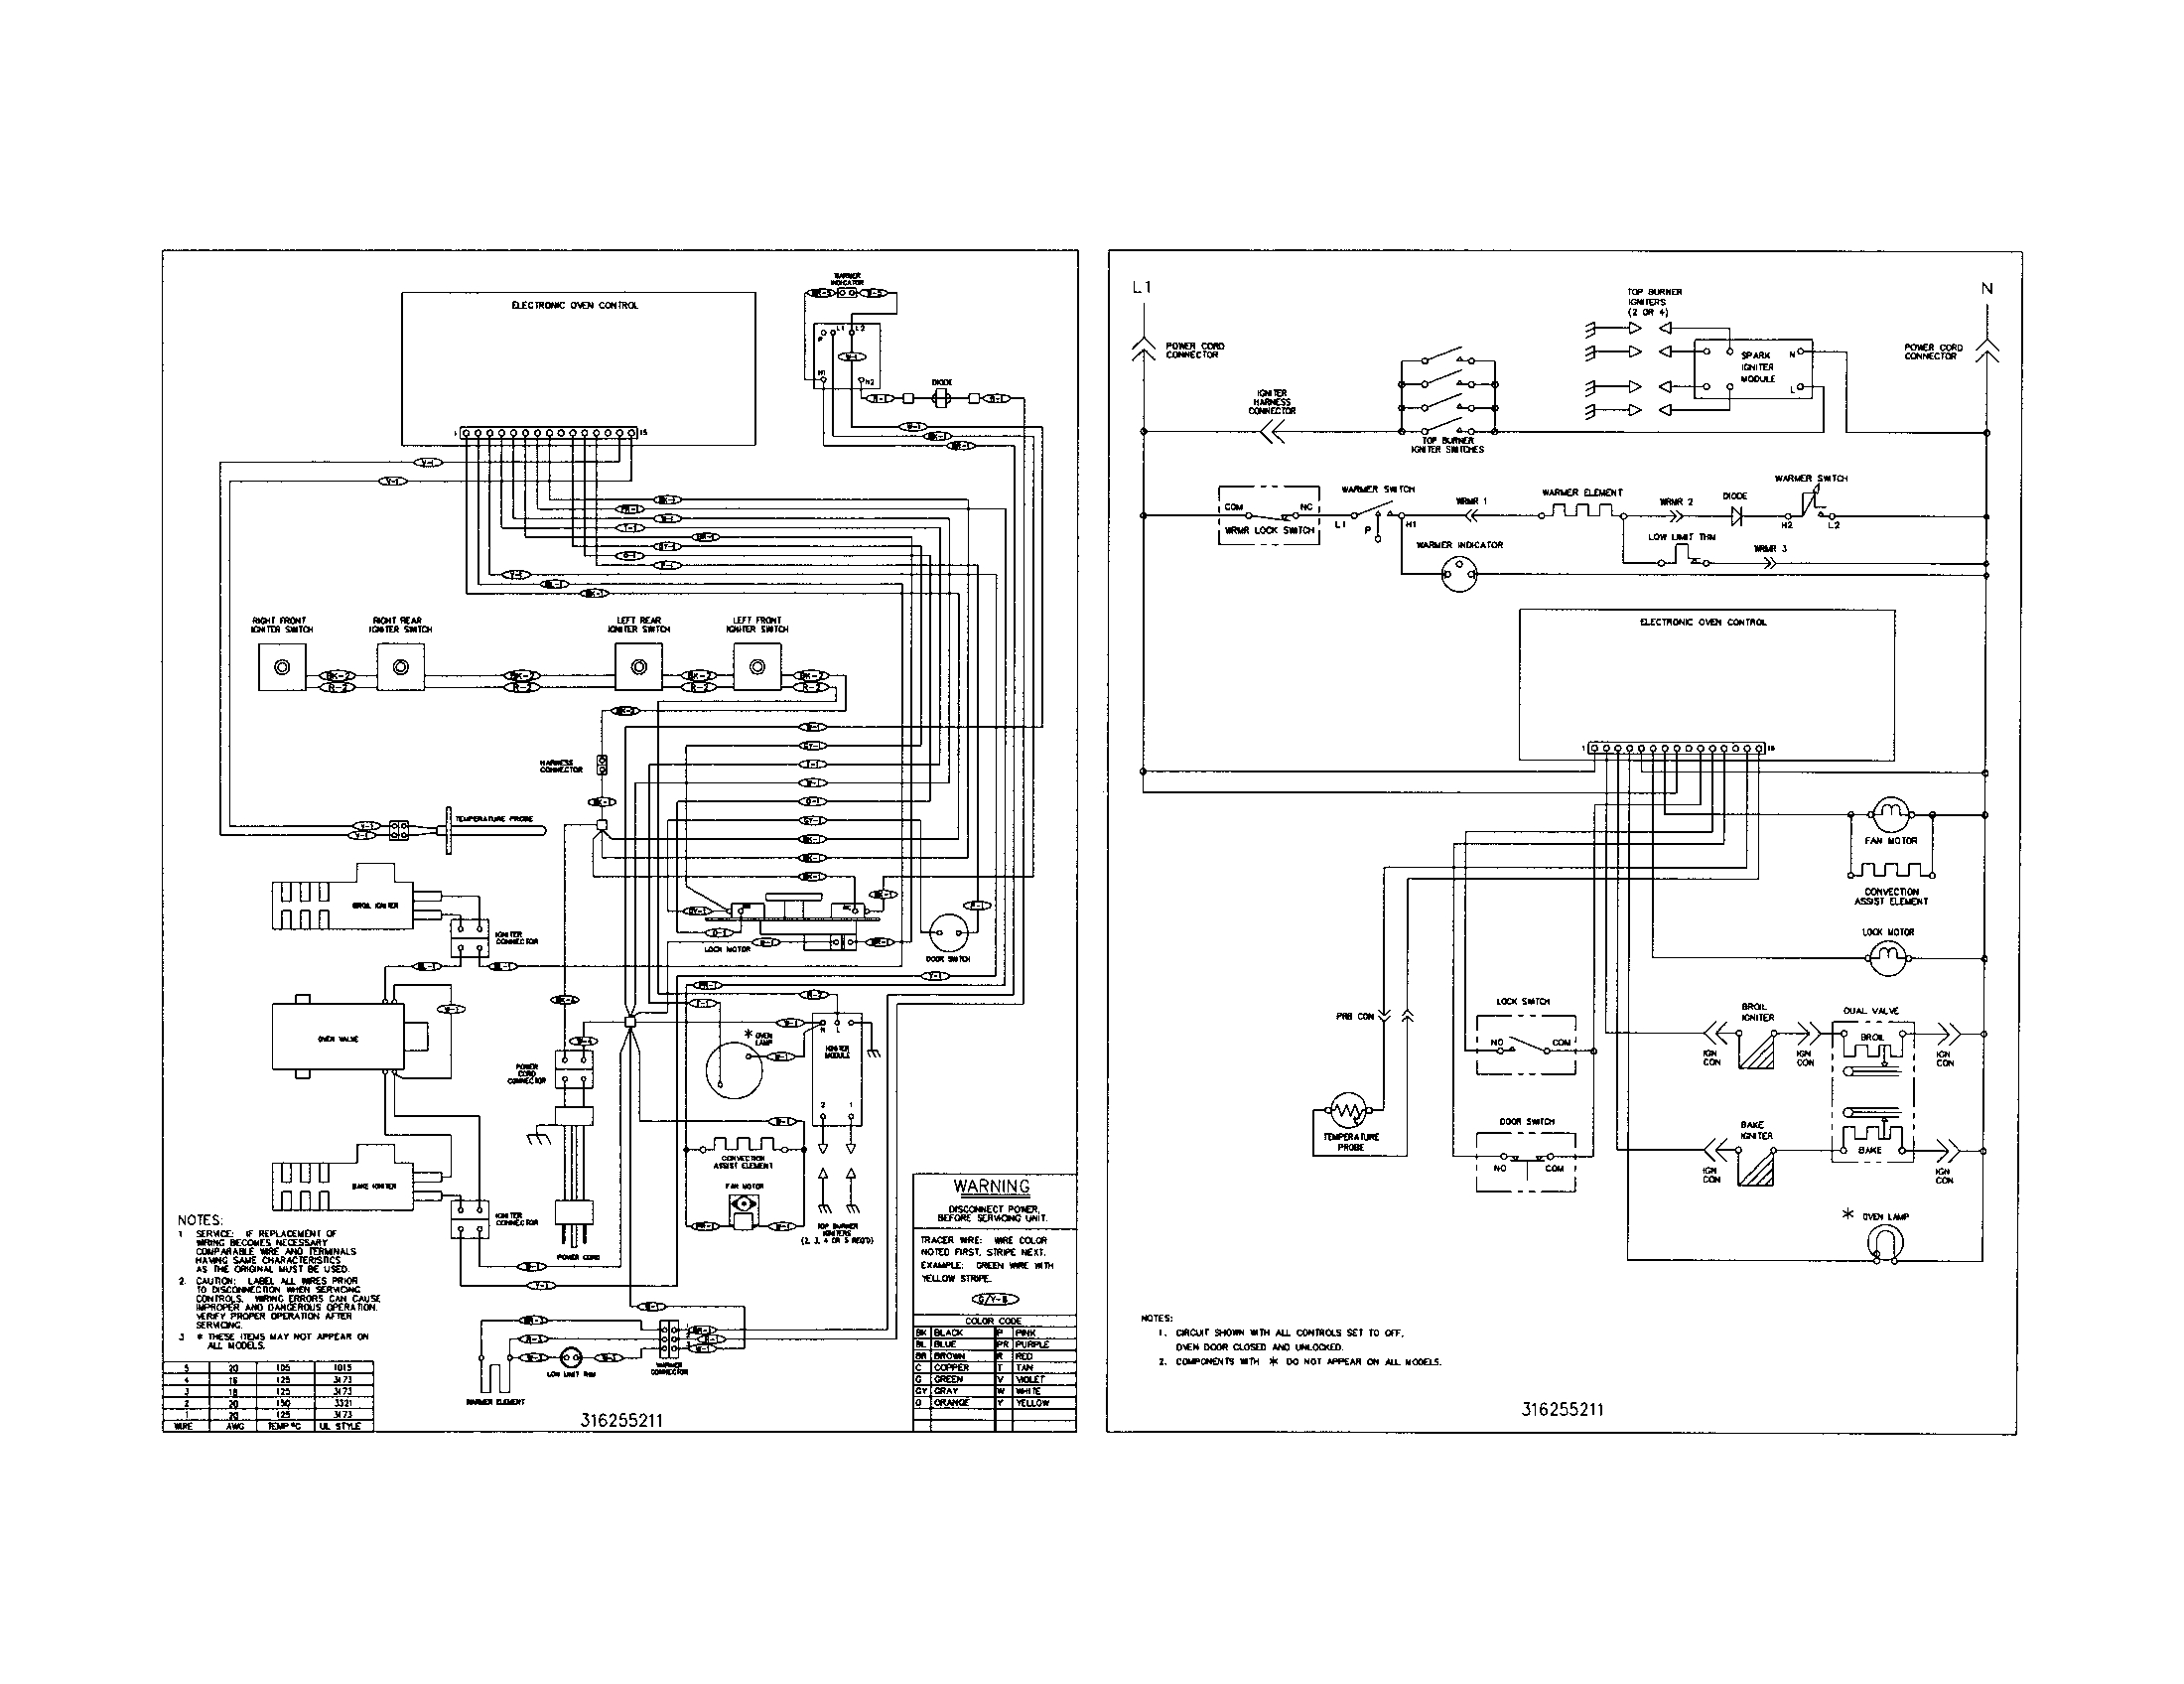 frigidaire wall oven wiring diagram Collection-Frigidaire Dryer Wiring Diagram Luxury Amazing Free Sample Ideas Frigidaire Dryer Wiring Diagram Ideas 9-b